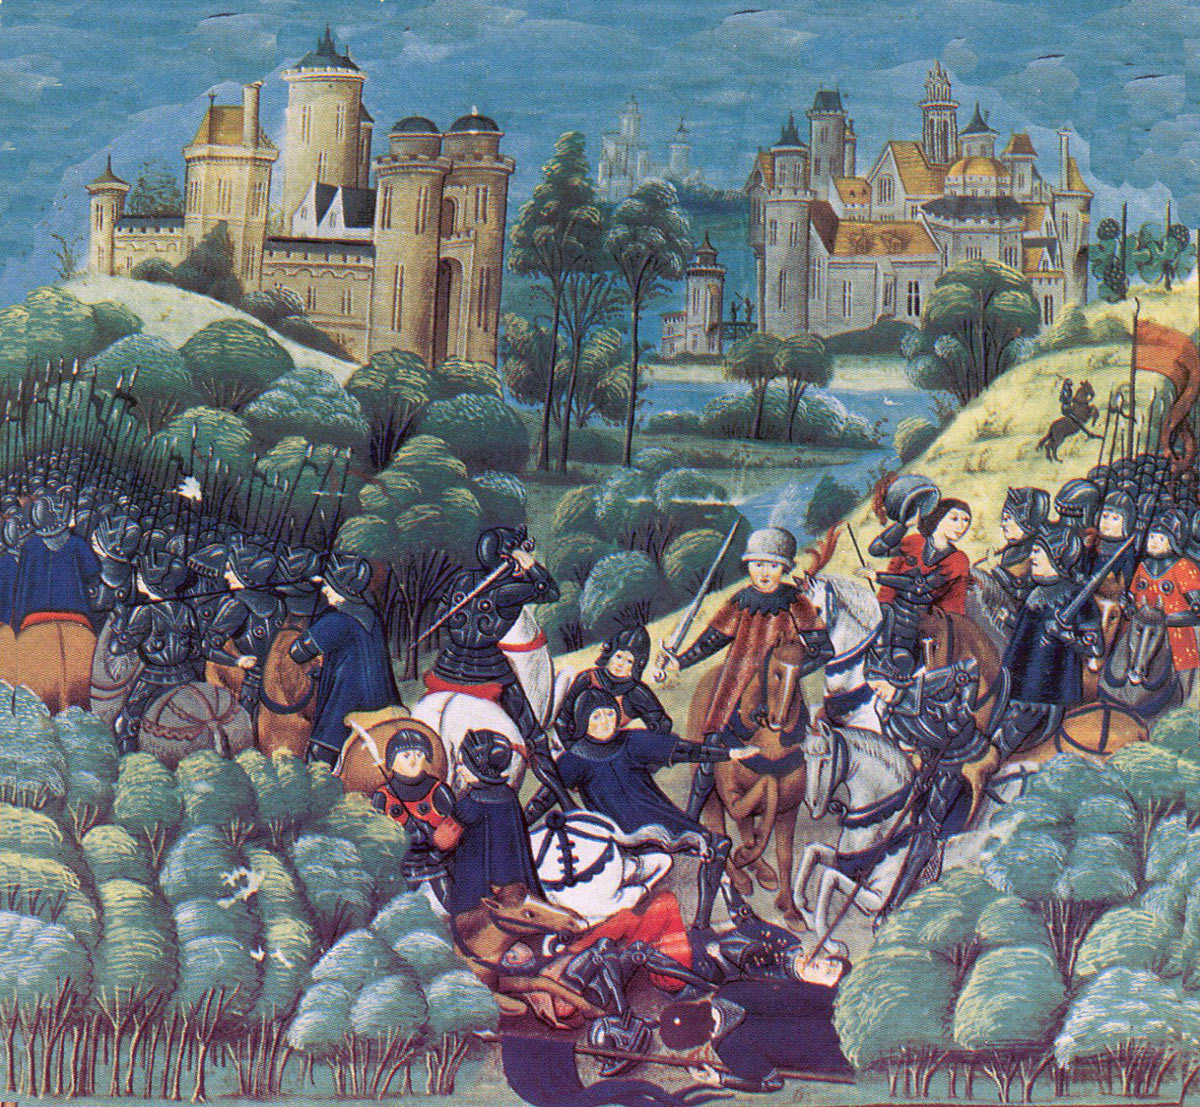 Battle of Mortimer's Cross on 3rd February 1461 in the Wars of the Roses